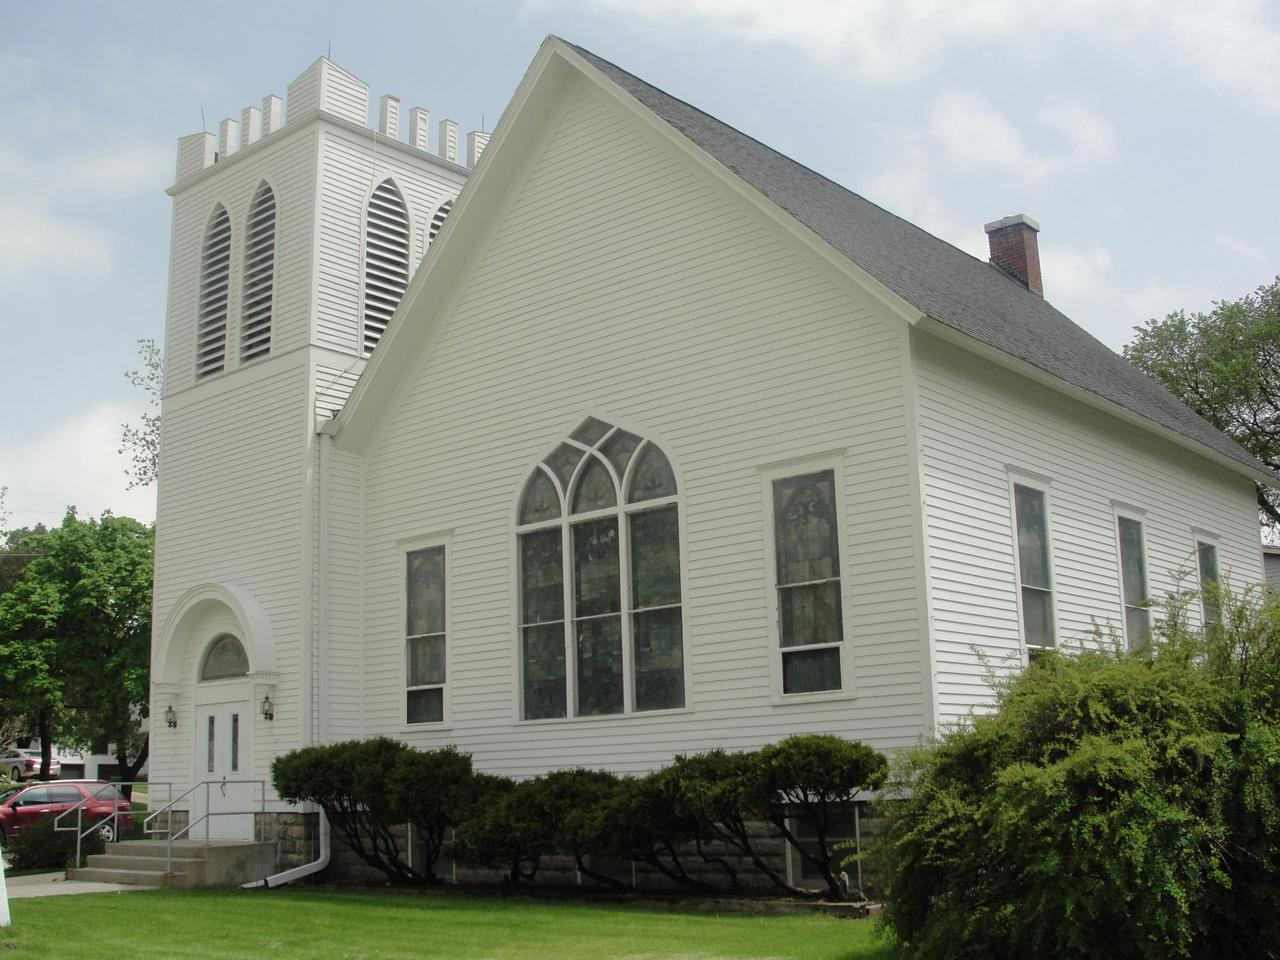 Currently a church, this beautiful well maintained old building would lend itself to being rehabbed into a unique residence. The zoning is currently R-3, Single Family Residential. Ap. 2,532 SF above grade, plus a large below grade that is currently utilized as a fellowship hall with a kitchen and two lavatories. Elevator. Two gas forced air furnaces. Gorgeous stained glass windows. All pews are included. Bring your ideas! See Sketch in Documents. Also see MLS #1625748 for listing information regarding a nearby vacant parcel that the church utilizes as additional parking/open space. Buyer to verify all dimensions/square footage.